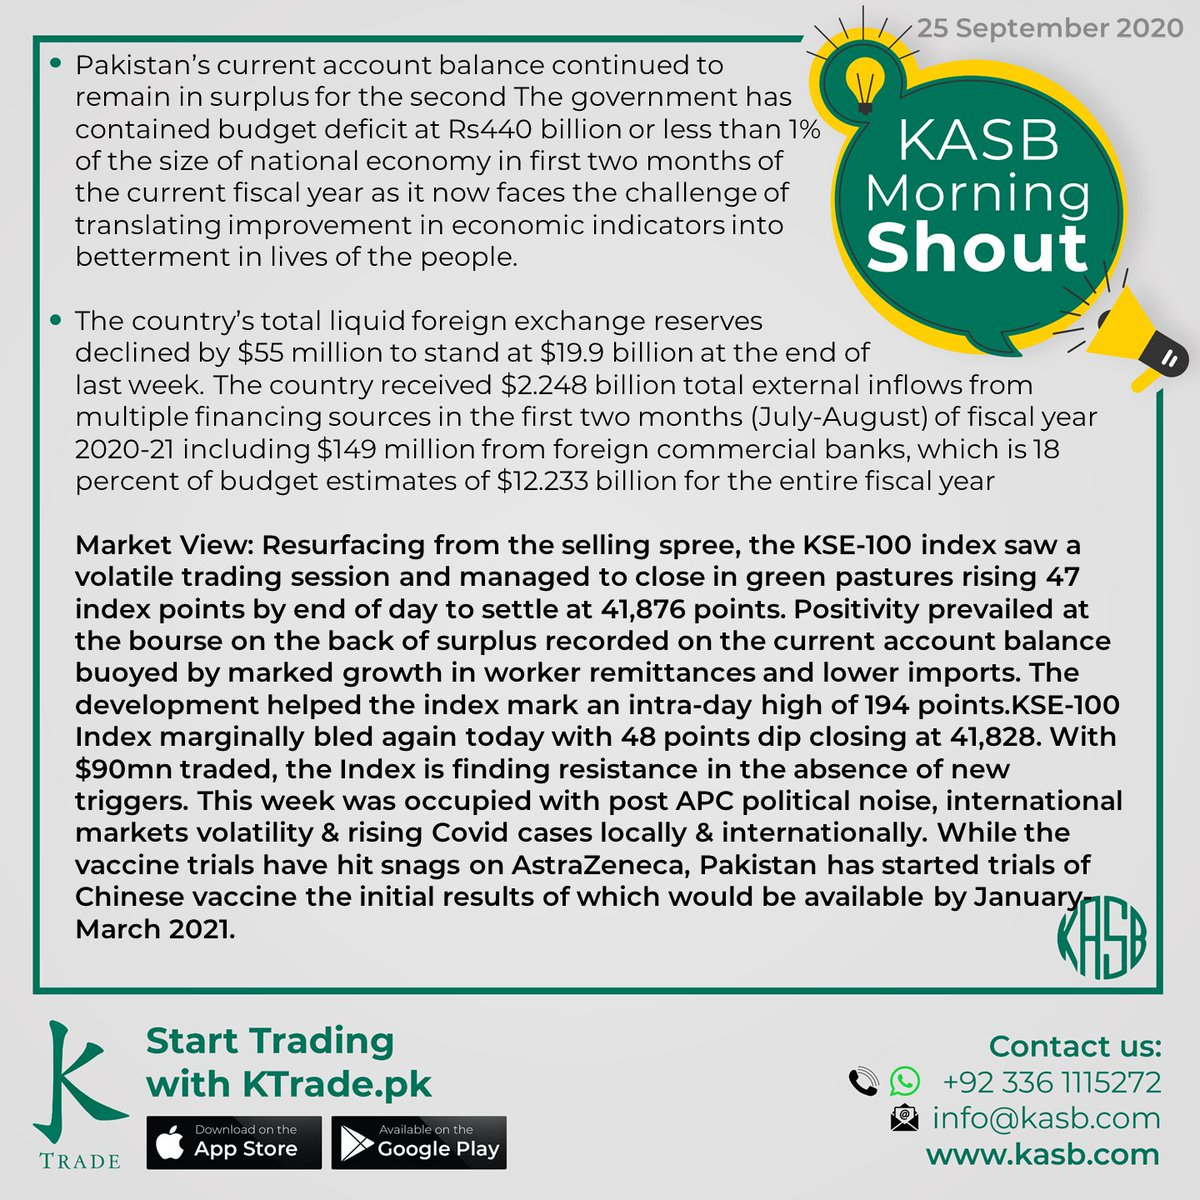 KASB Morning Shout: Our views on today's news #kasb #smartinvesting #psx #stockmarket #KTrade #onlinetrading #pakistaneconomy #imrankhan #sbp #inflation #kse100 #brokeragehouse #psxstocks #marketupdate #emergingmarkets #frontiermarkets #news #morning #today #views https://t.co/rXtAuB4wS7